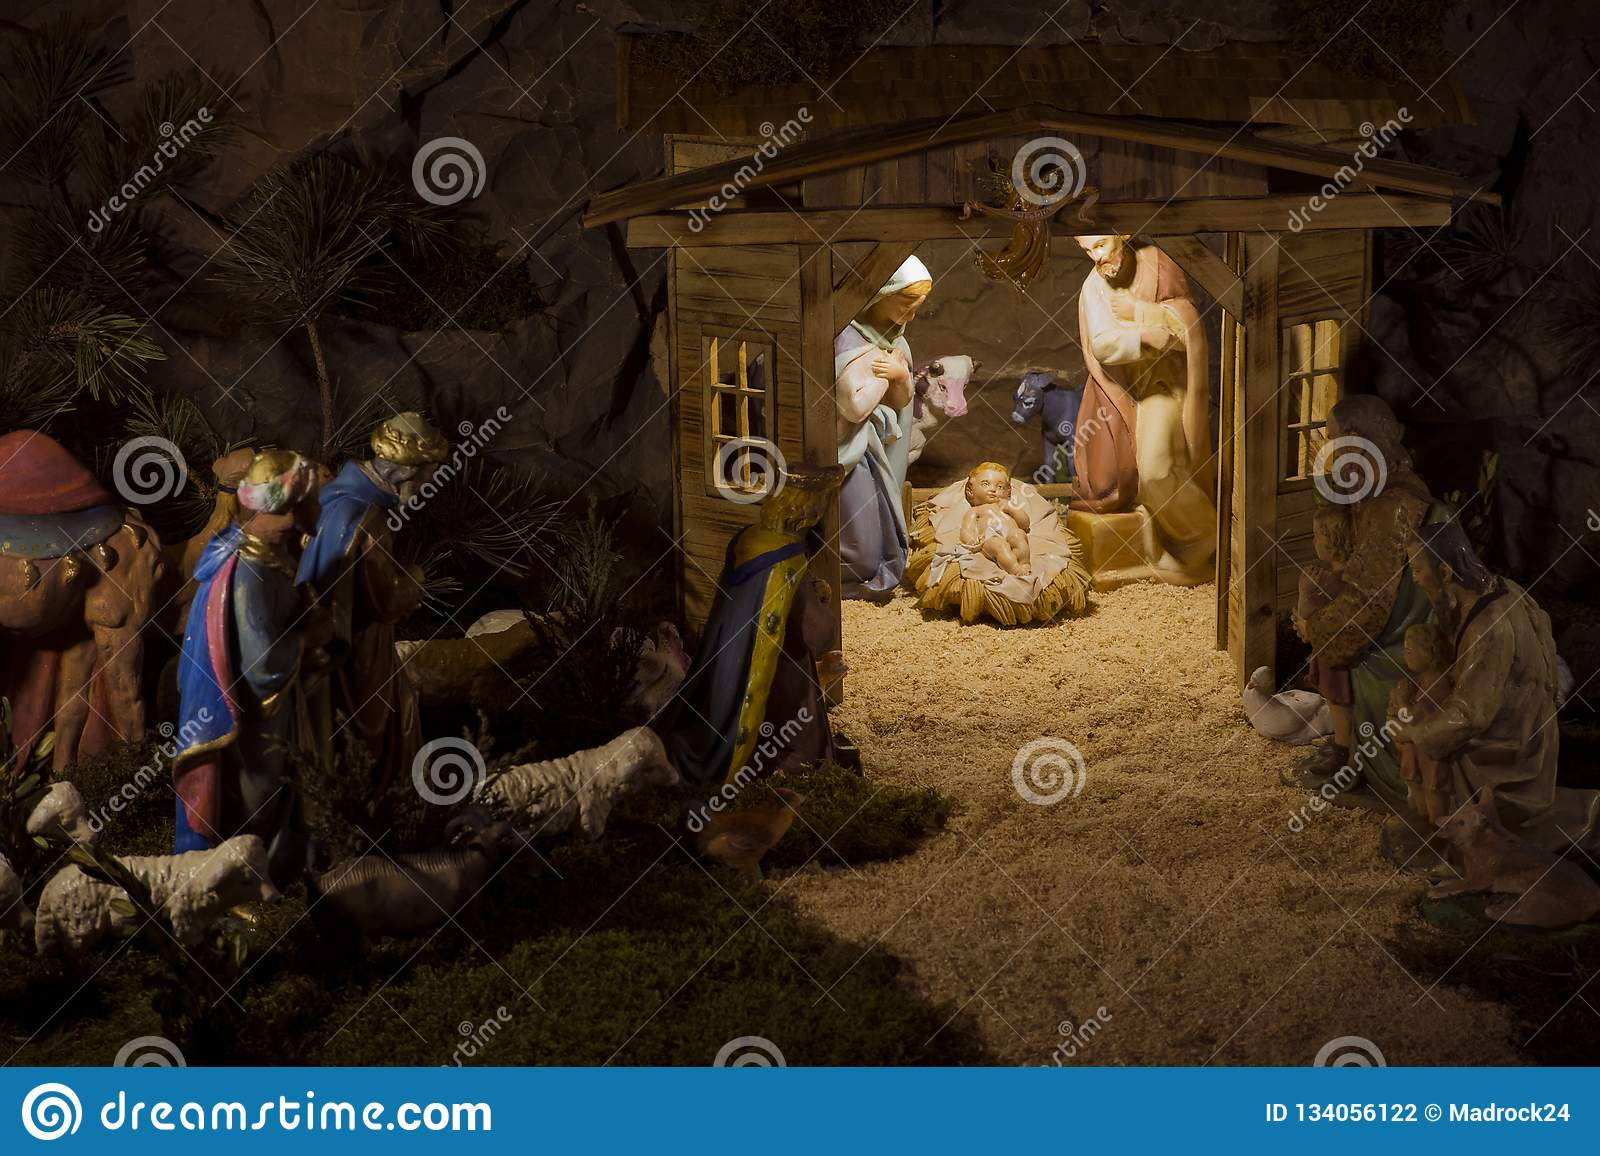 Christmas Jesus Birth Images.Nativity Scene Christmas Birth Of Jesus Mary Joseph